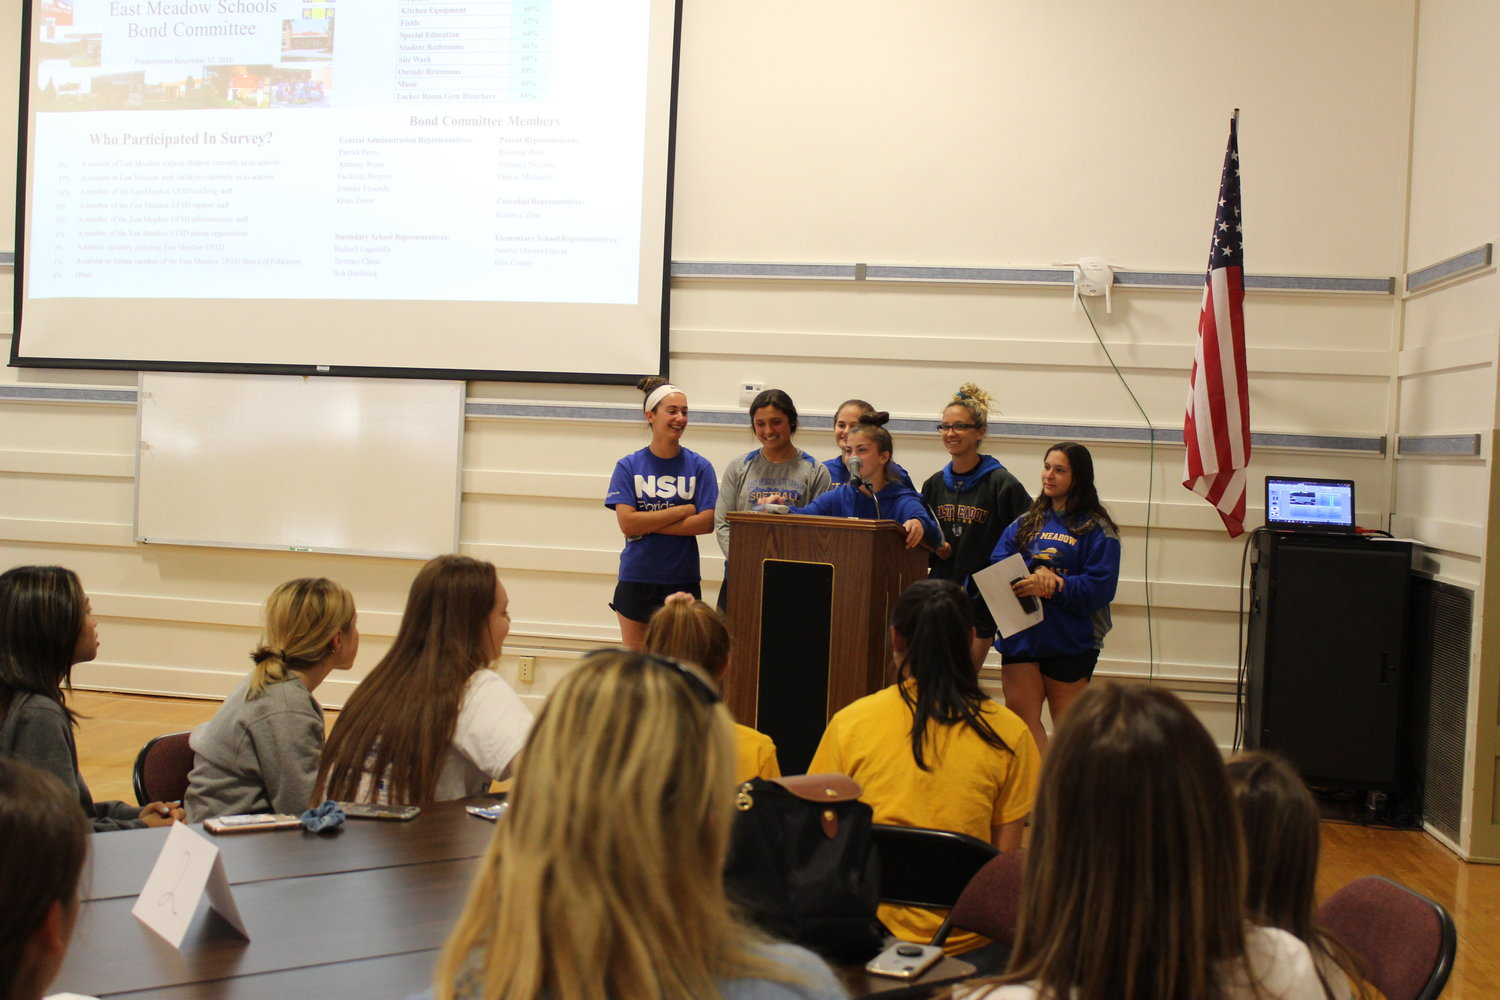 Members of the East Meadow High School softball team were among many in the room who spoke in favor of synthetic turf.